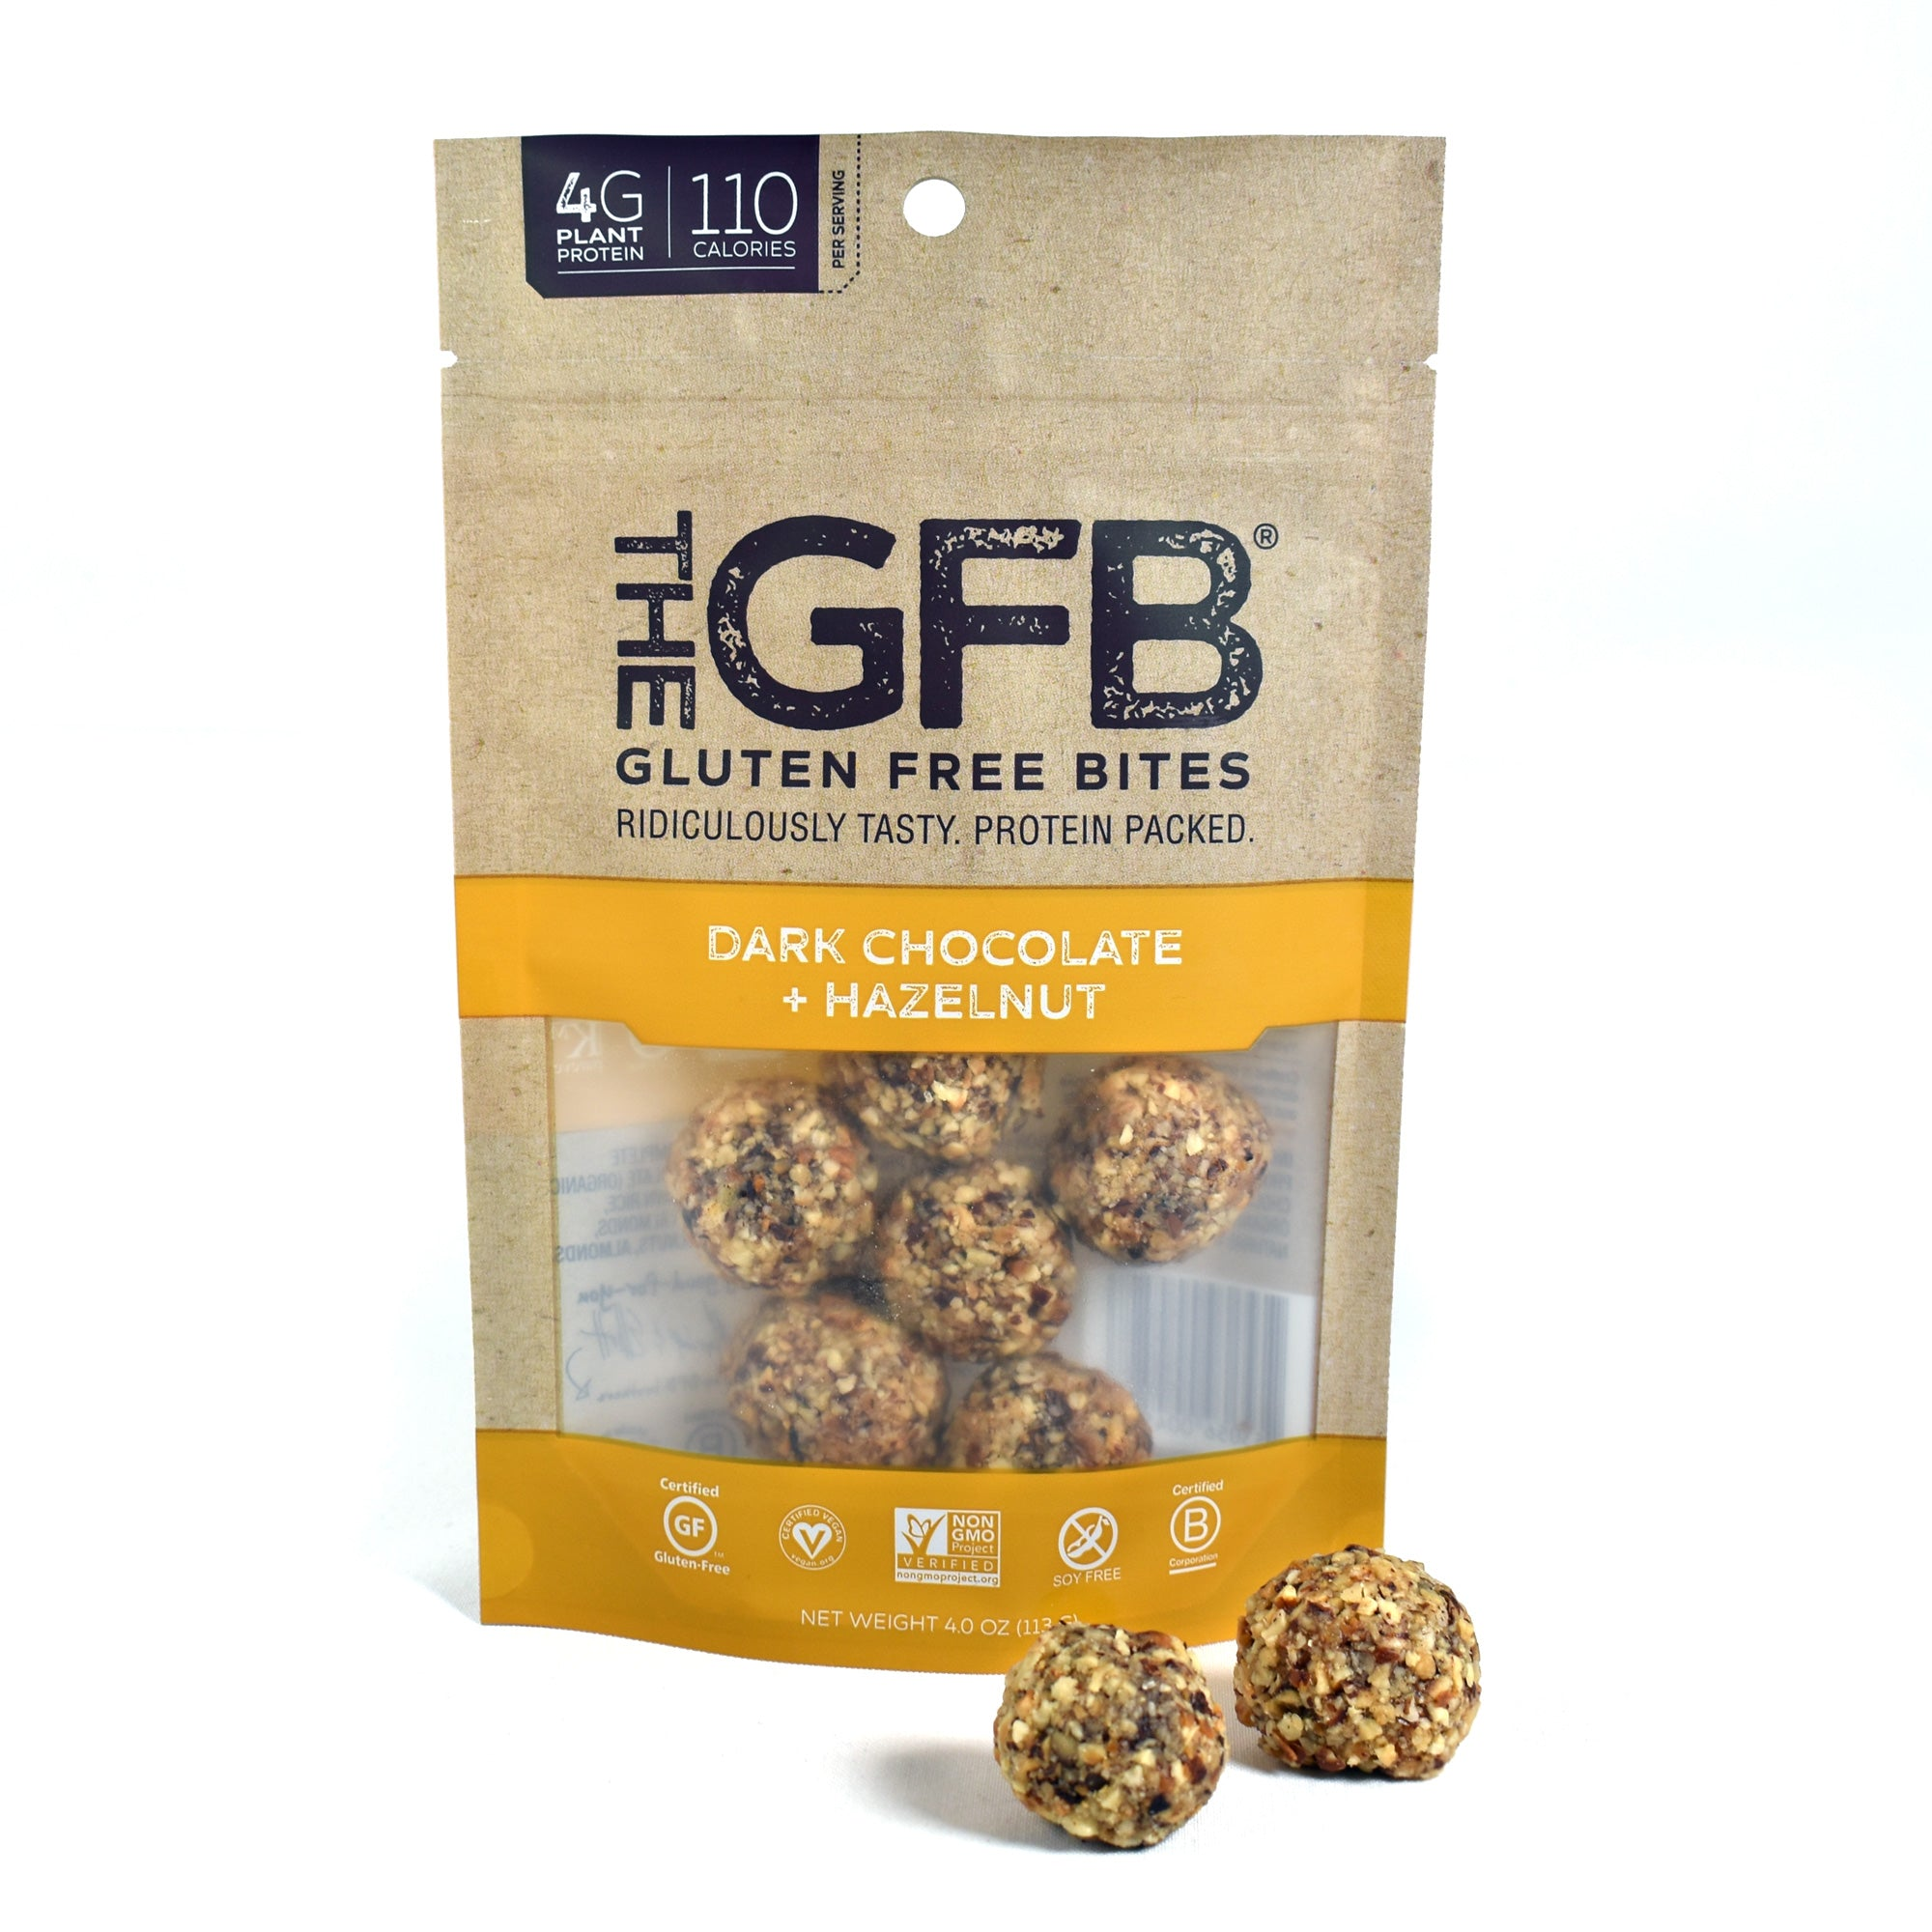 Dark Chocolate Hazelnut GFB Bites (4 oz. bag) - The GFB - The Gluten Free Bar